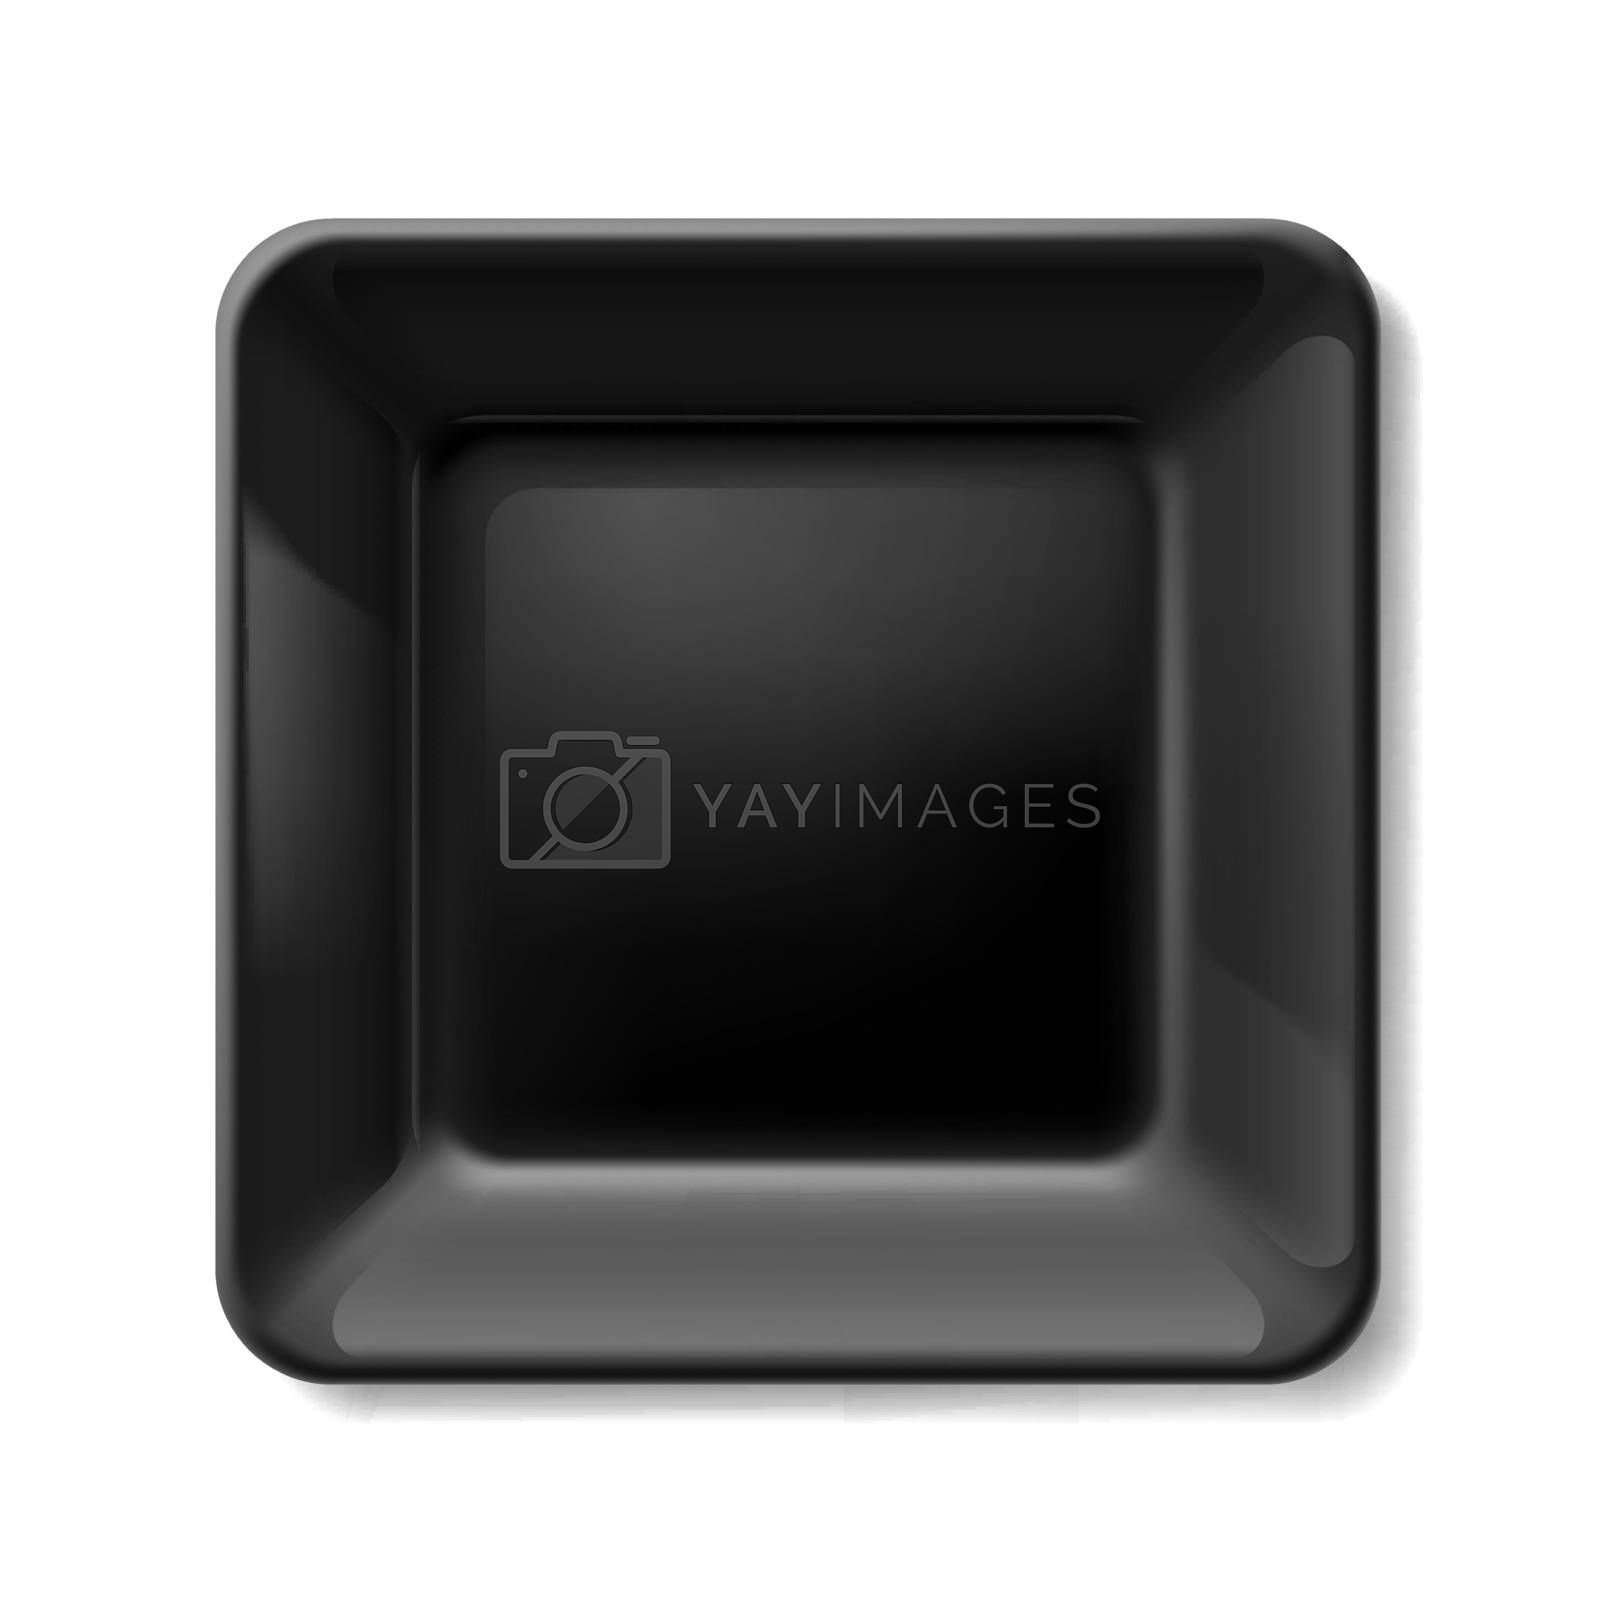 Royalty free image of Black plate by dvarg